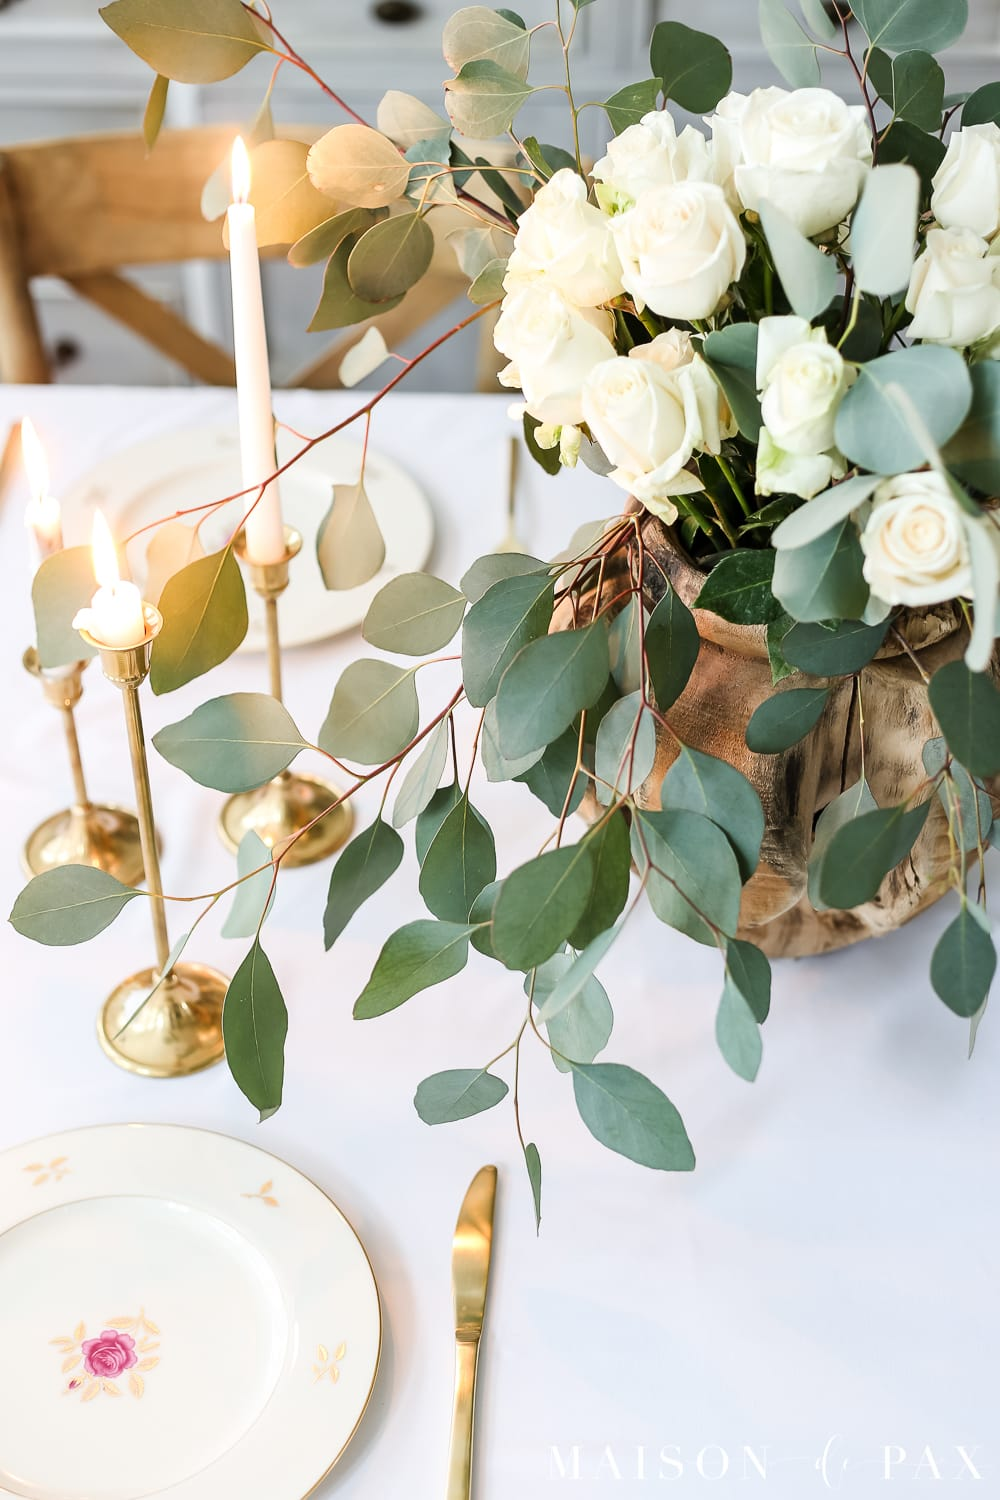 white roses and eucalyptus centerpiece for easter- Maison de Pax